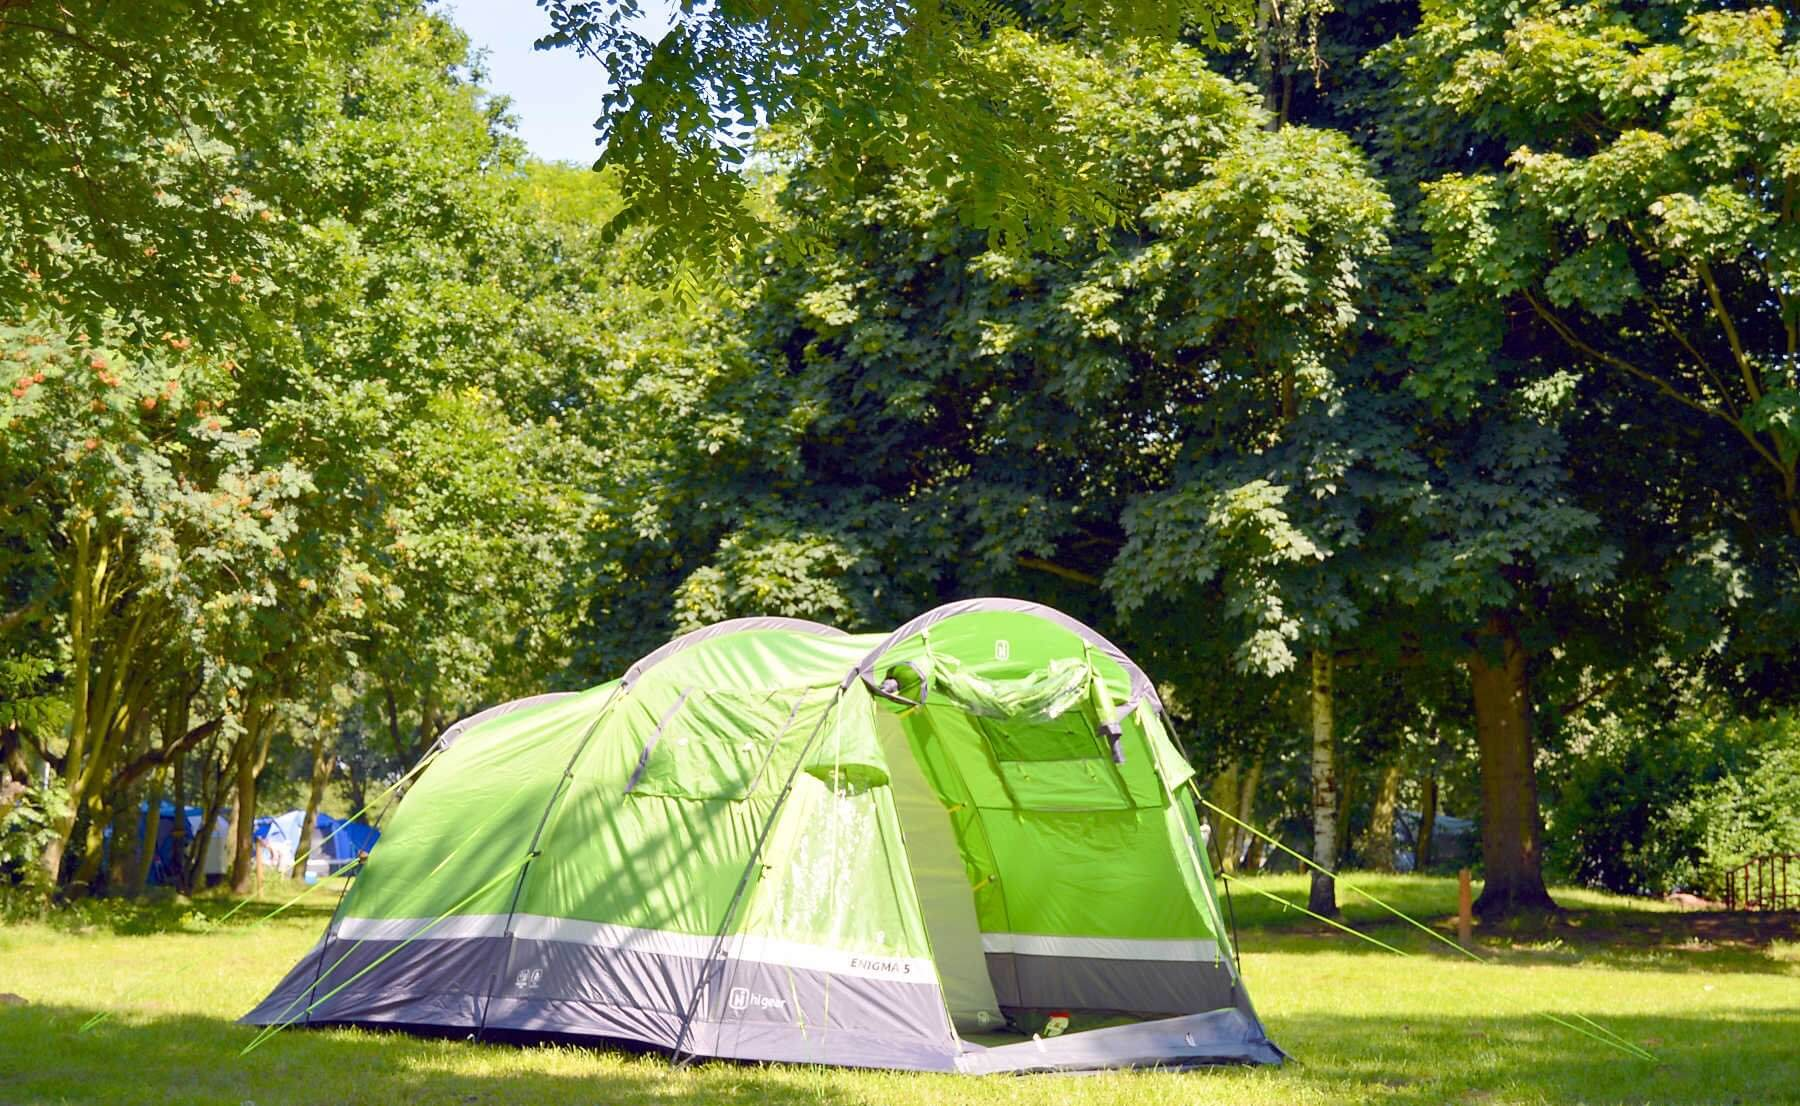 Hatfield Outdoor Activity Centre and Campsite